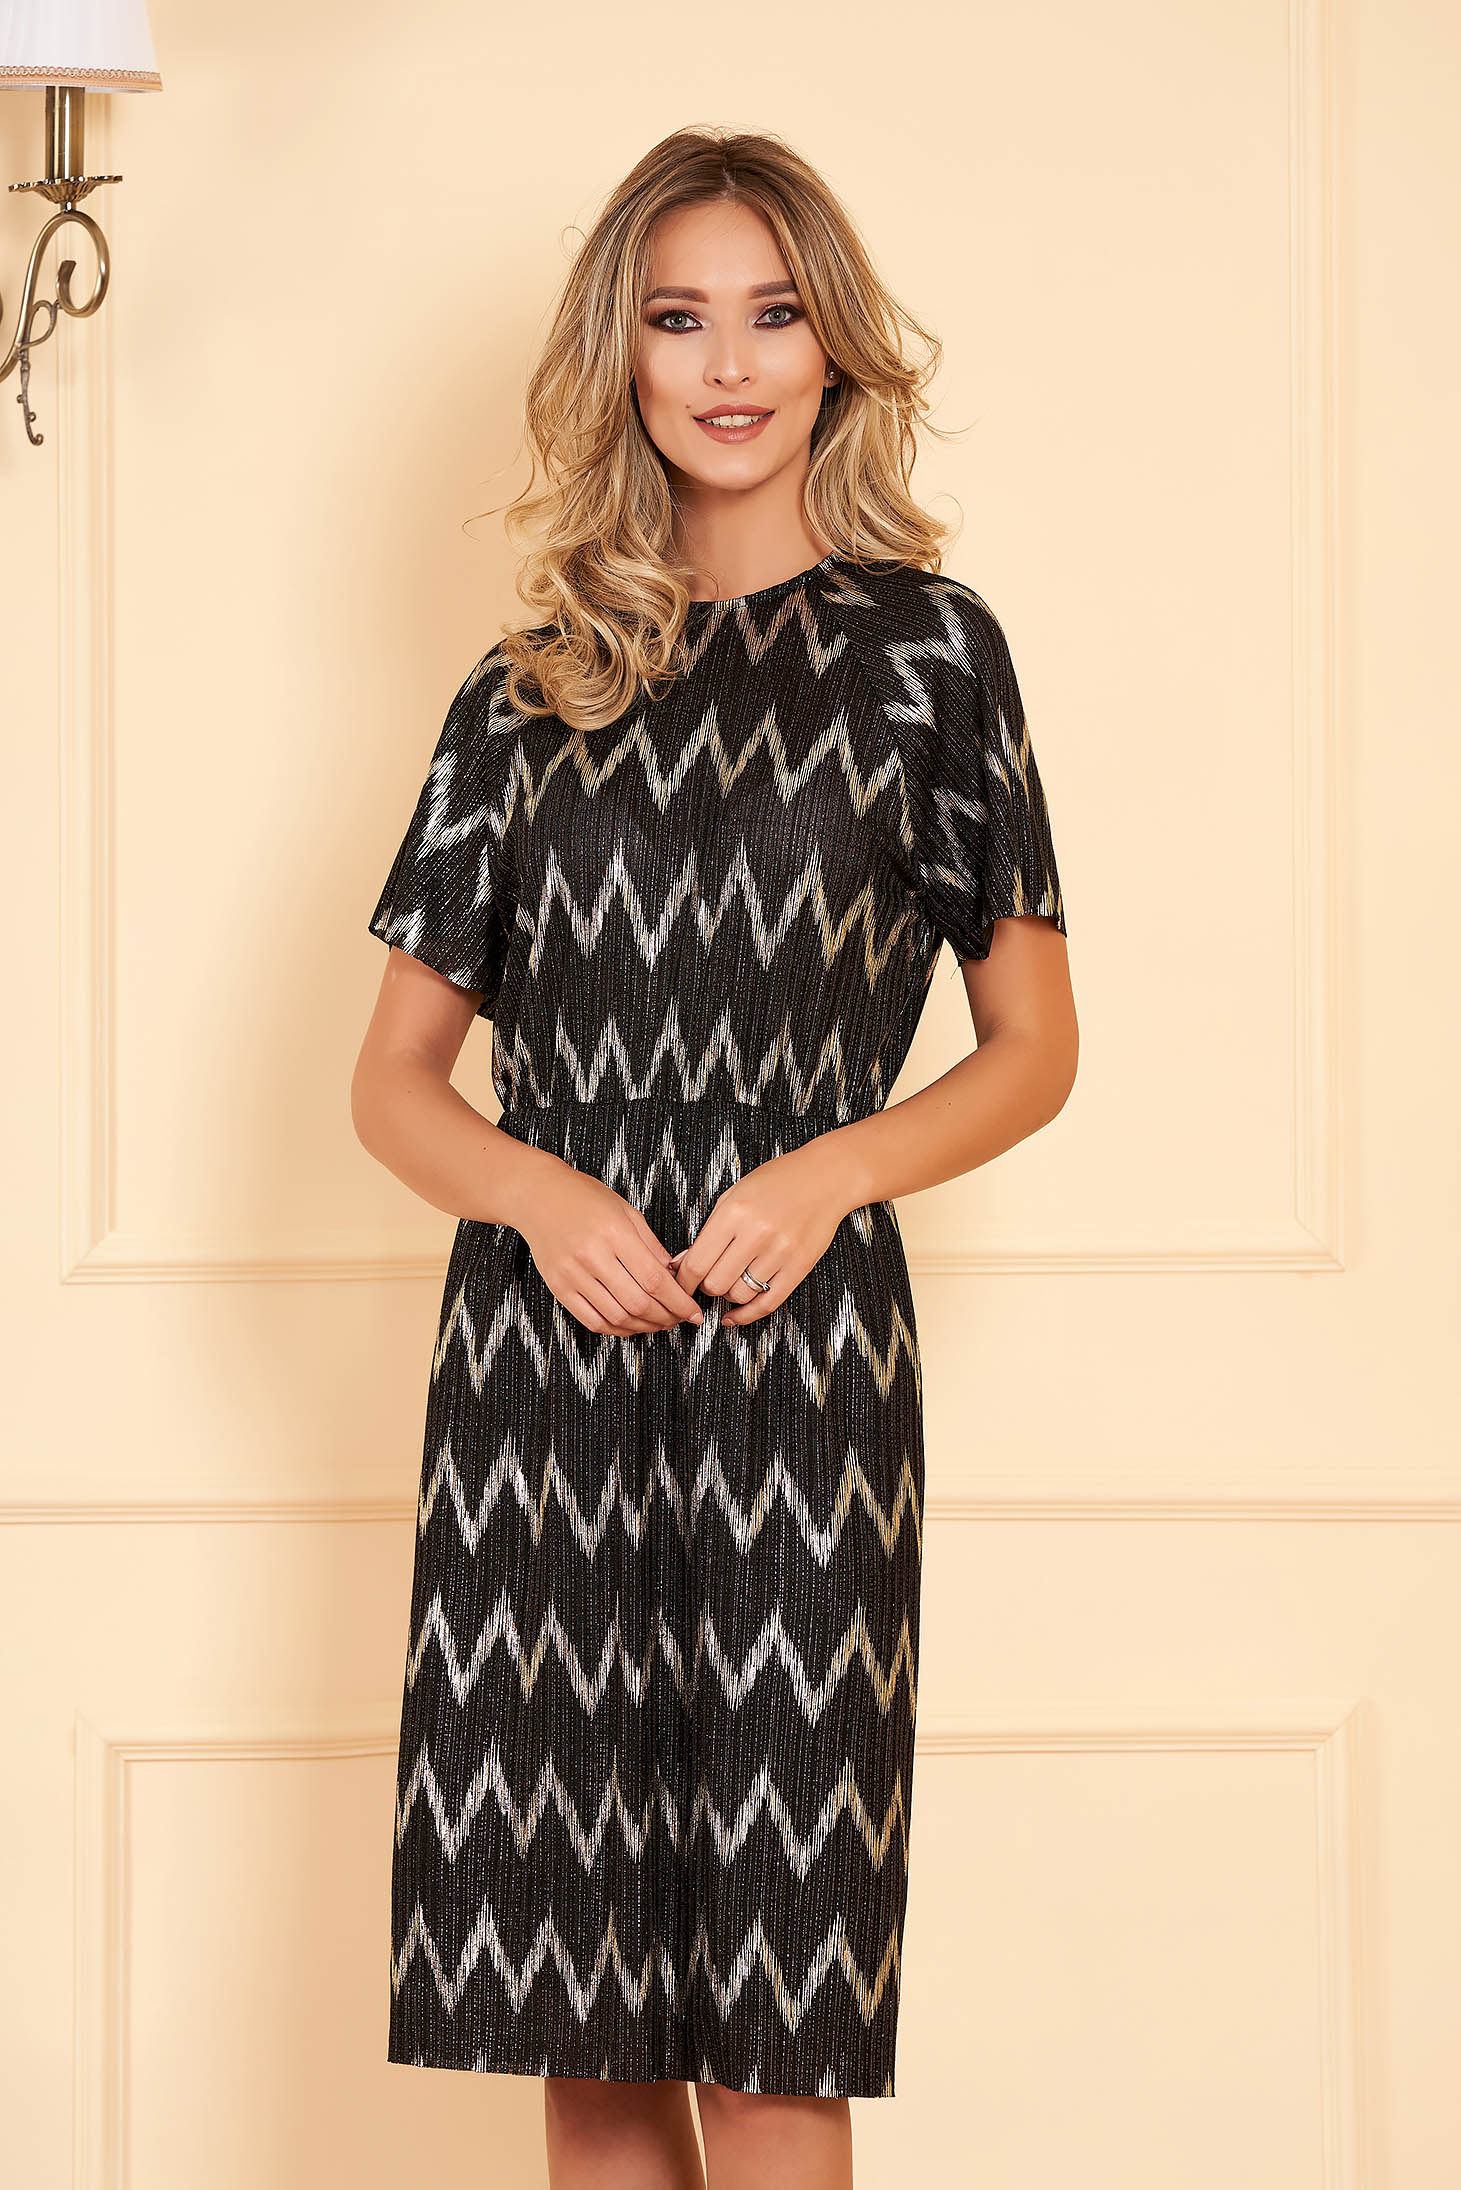 Dress StarShinerS black occasional midi straight knitted with elastic waist short sleeve